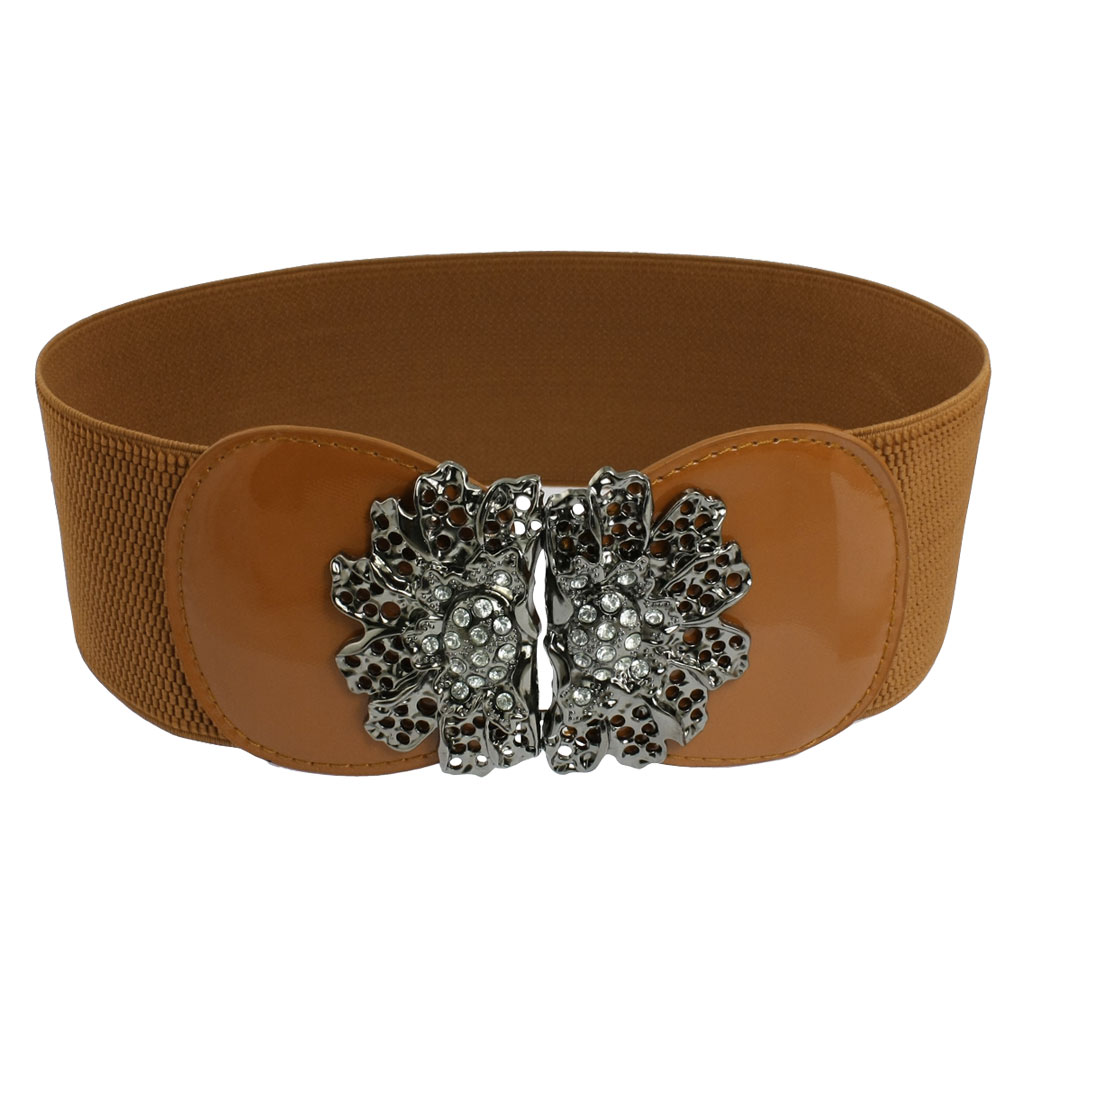 Brown Elastic Band Rhinestone Metal Floral Cinch Waist Belt for Lady